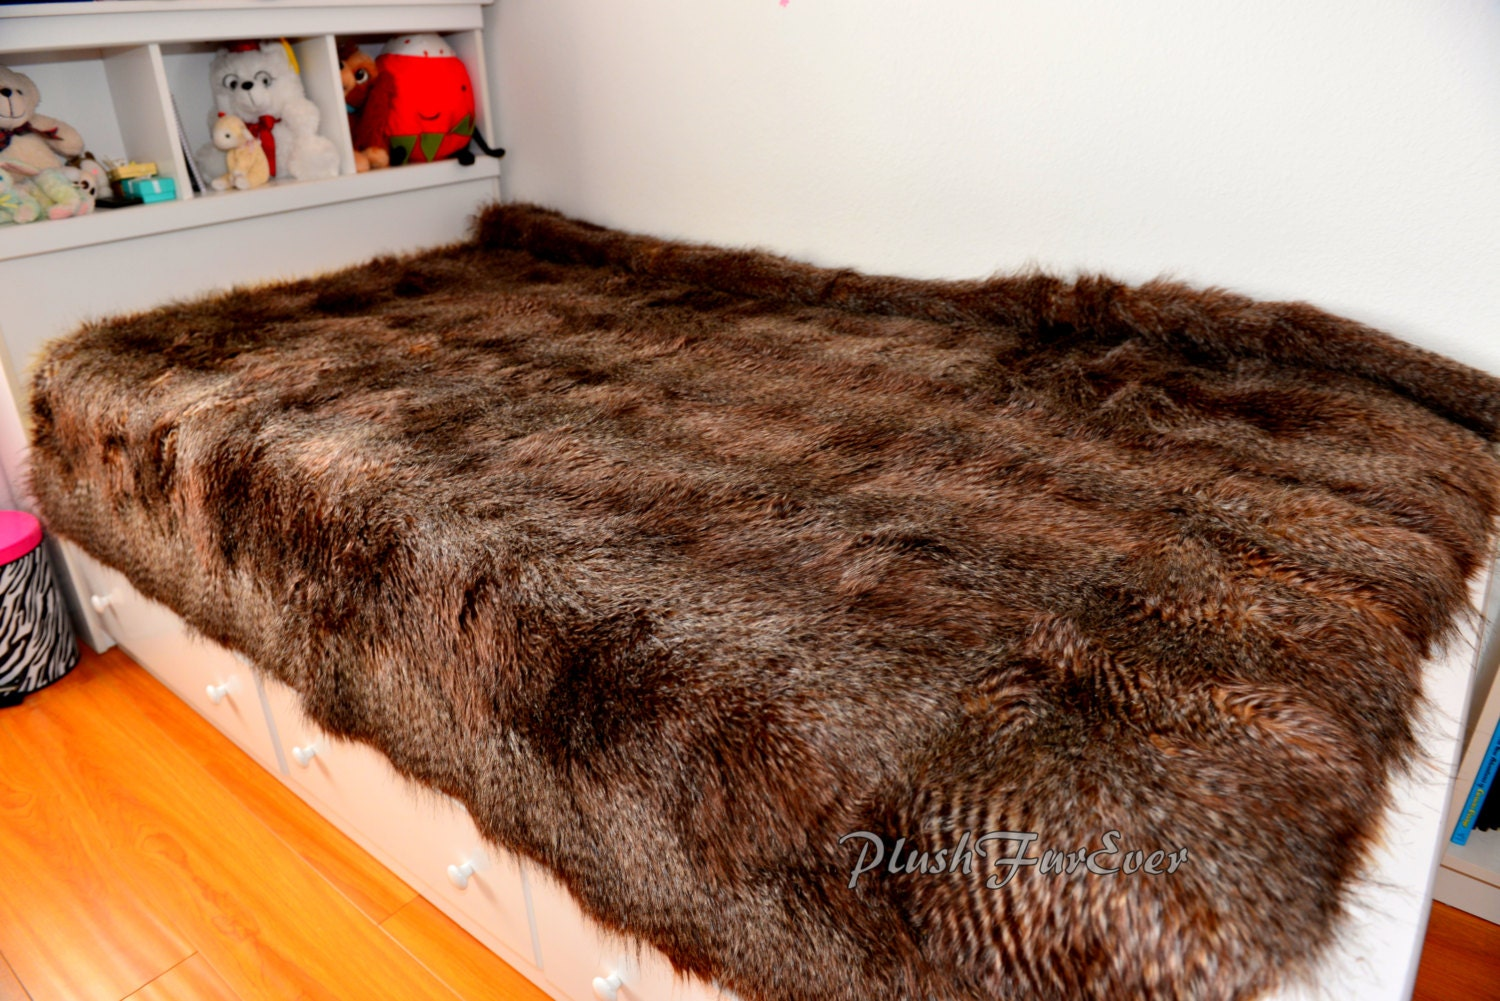 rustic home decor brown raccoon plush faux fur blanket bedding comforters bedspread coverlets. Black Bedroom Furniture Sets. Home Design Ideas